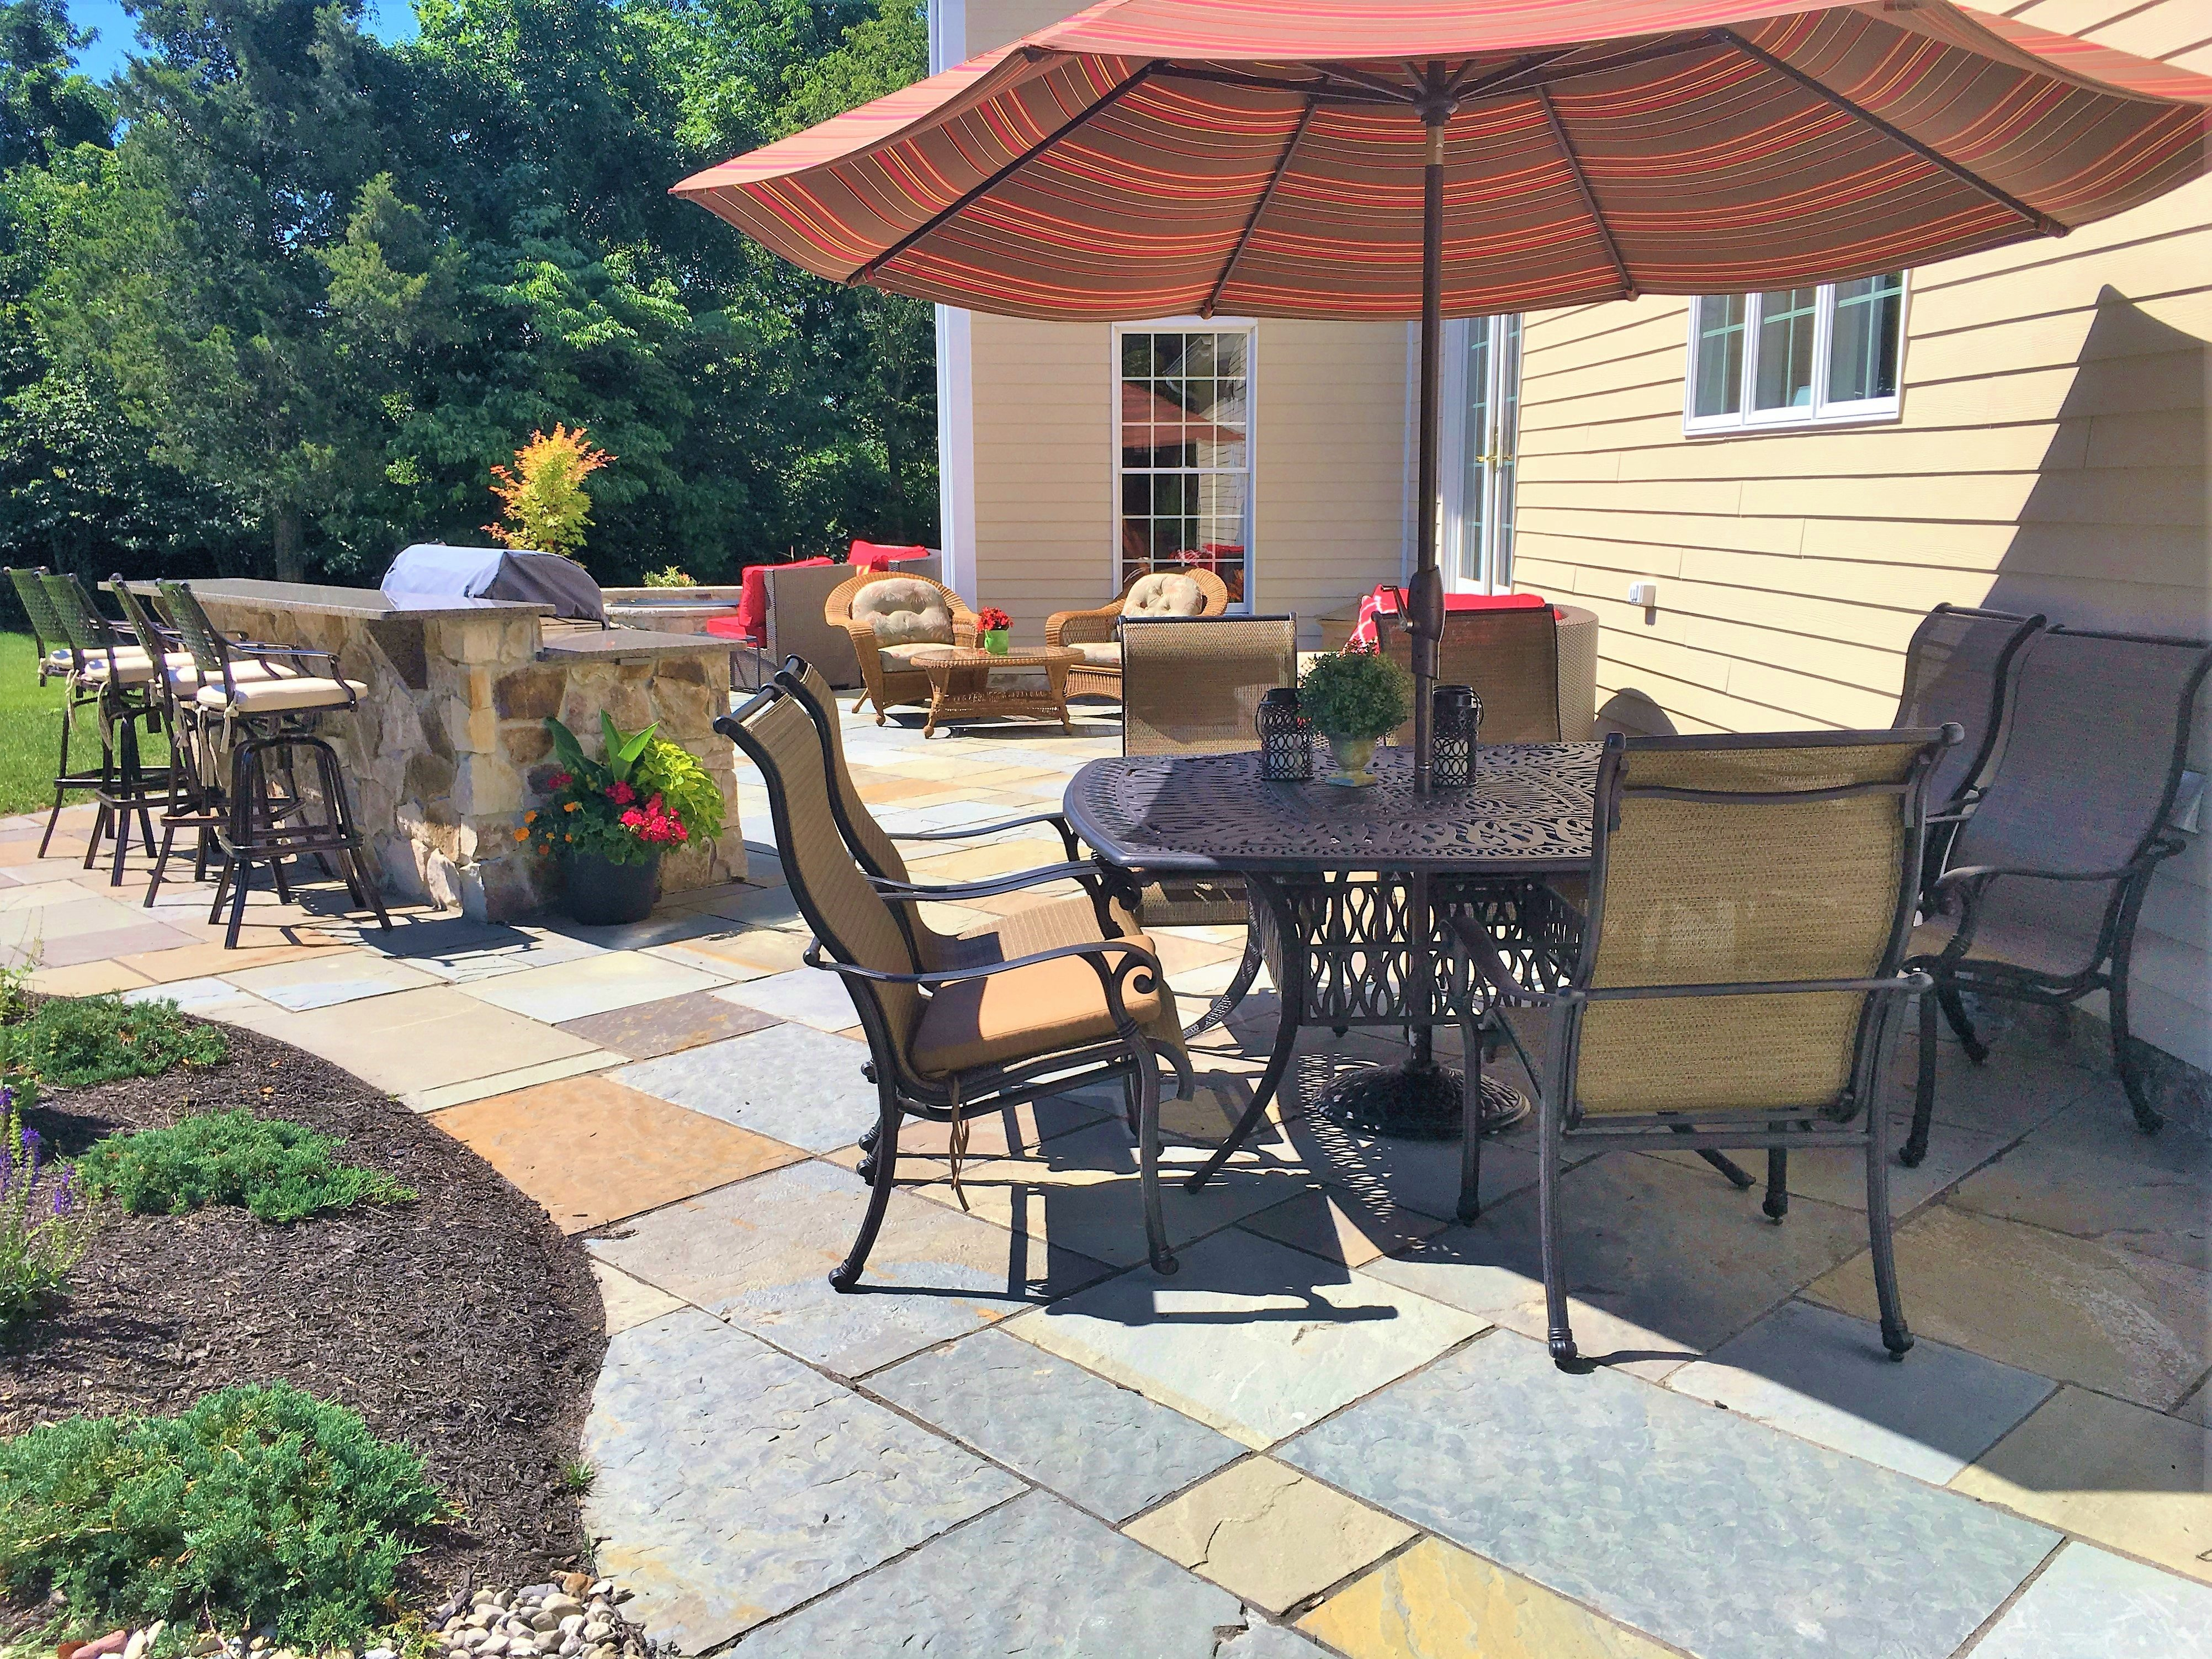 4 Hardscaping Benefits That Improve Your Hunterdon County Home